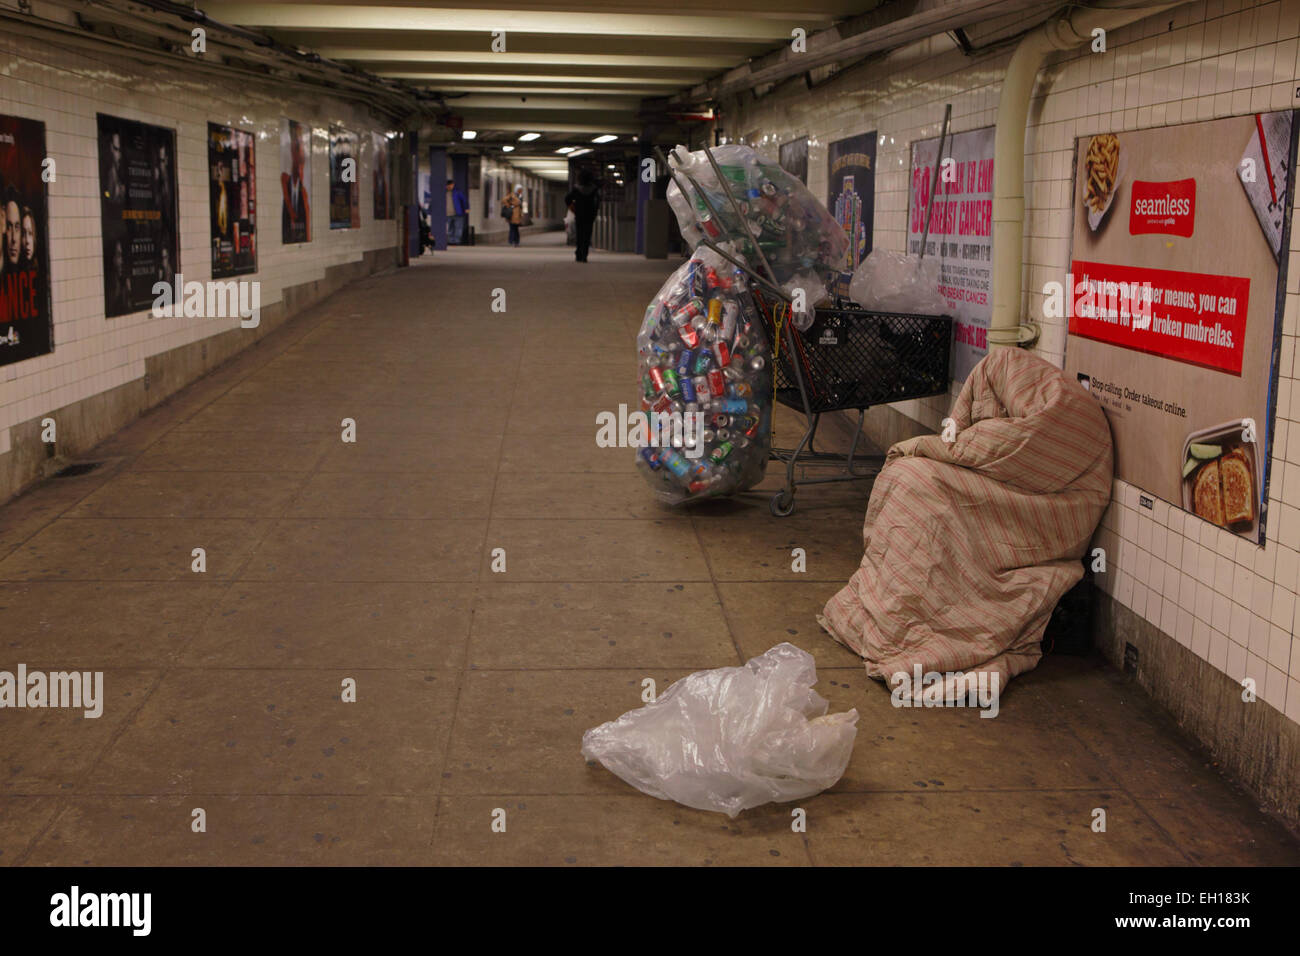 Can and bottle collector sleeps on East Broadway subway station in New York - Stock Image